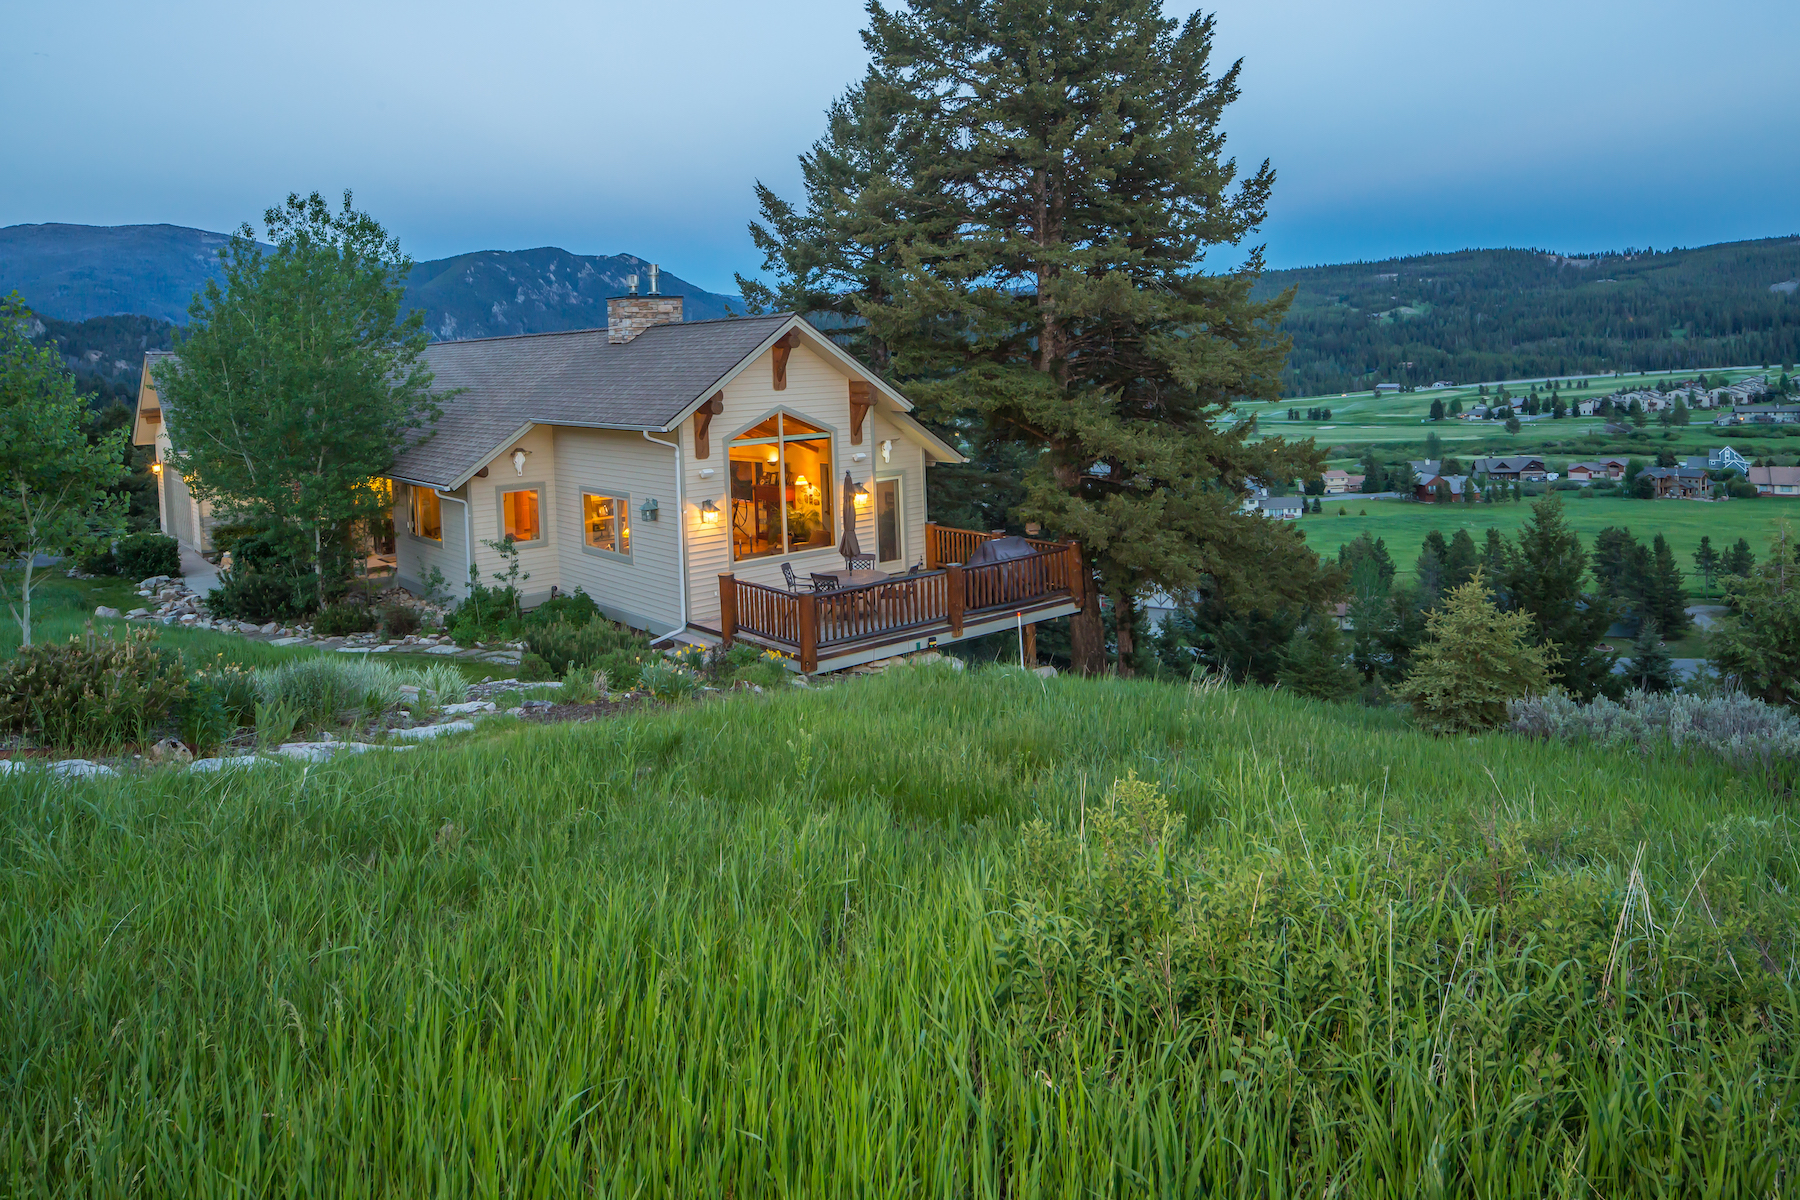 Casa Unifamiliar por un Venta en 2350 Two Gun White Calf Road Big Sky, Montana, 59716 Estados Unidos